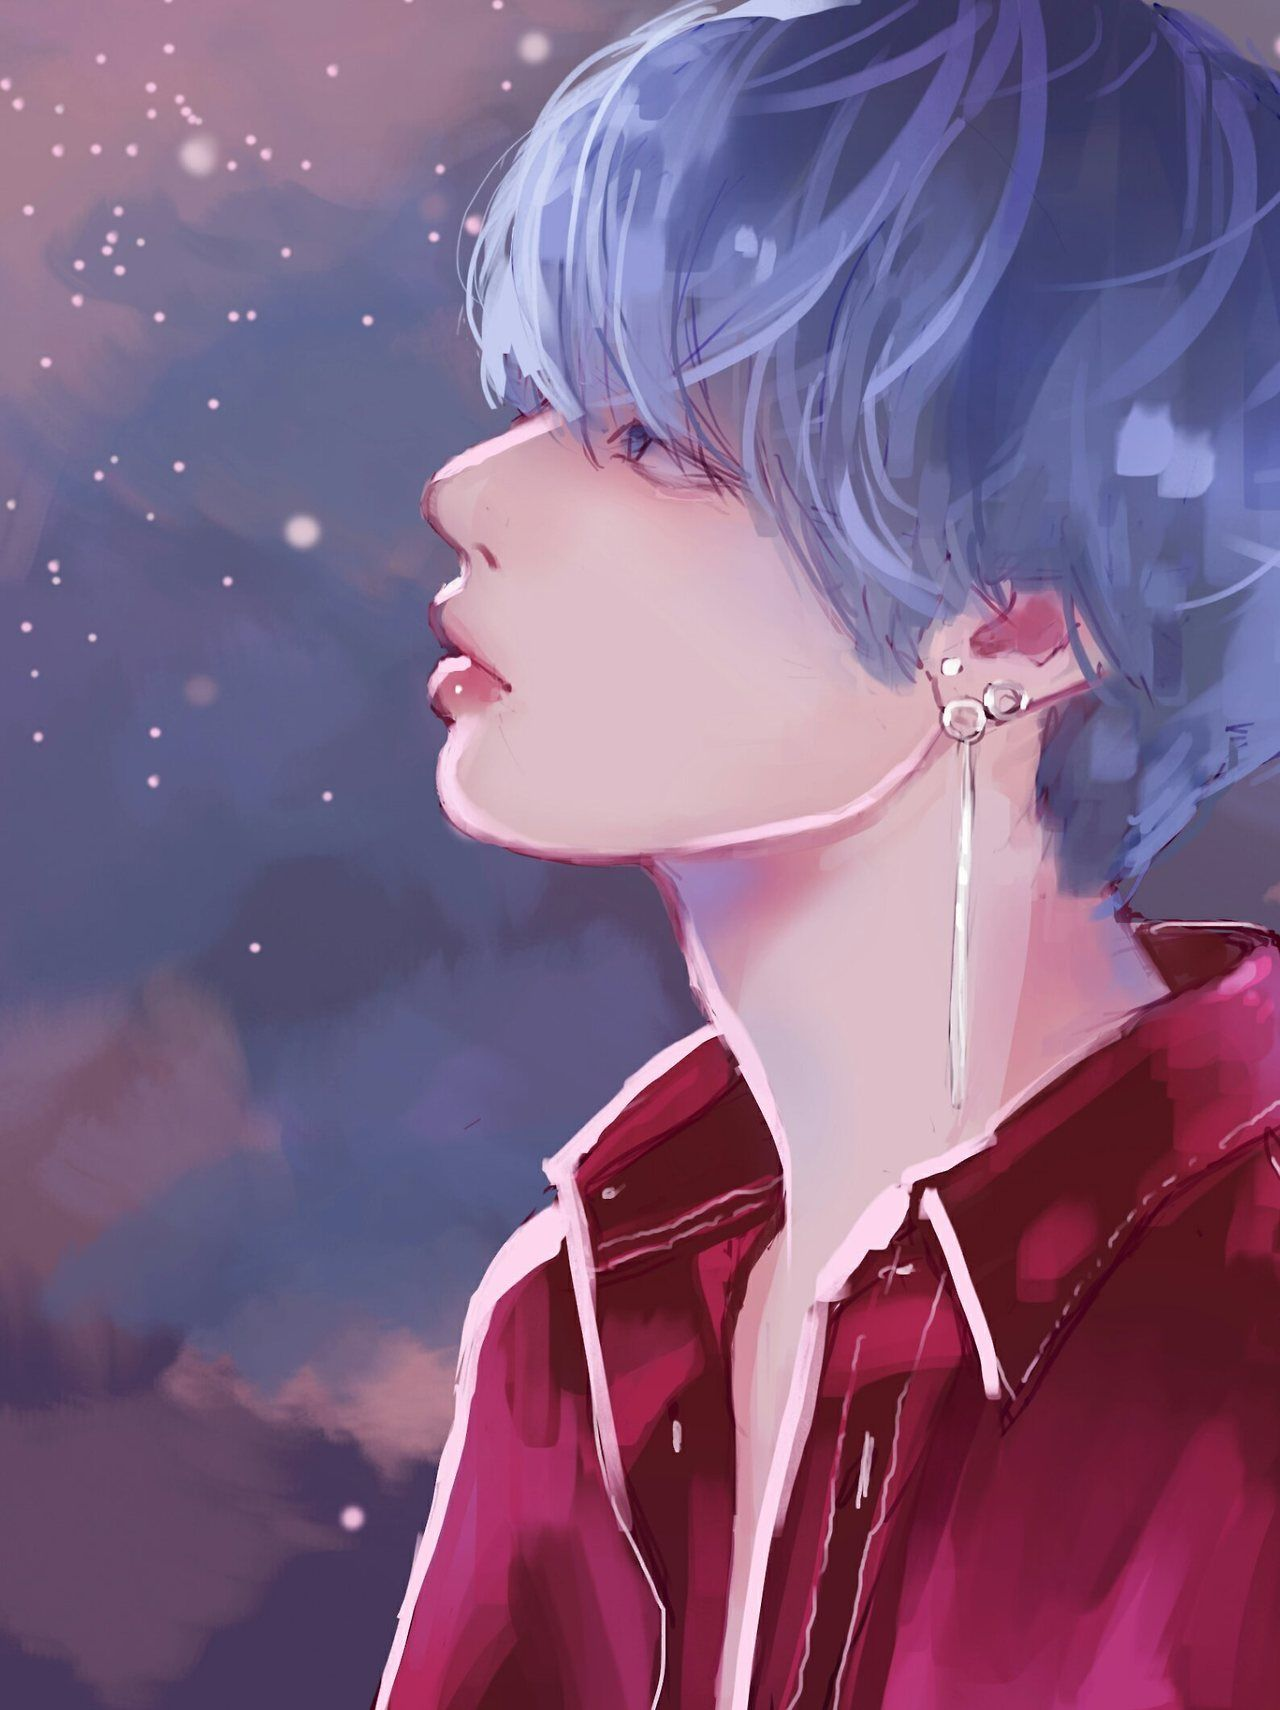 Pin by Shiro AndMilo on BTS Vkook Taehyung fanart, Bts